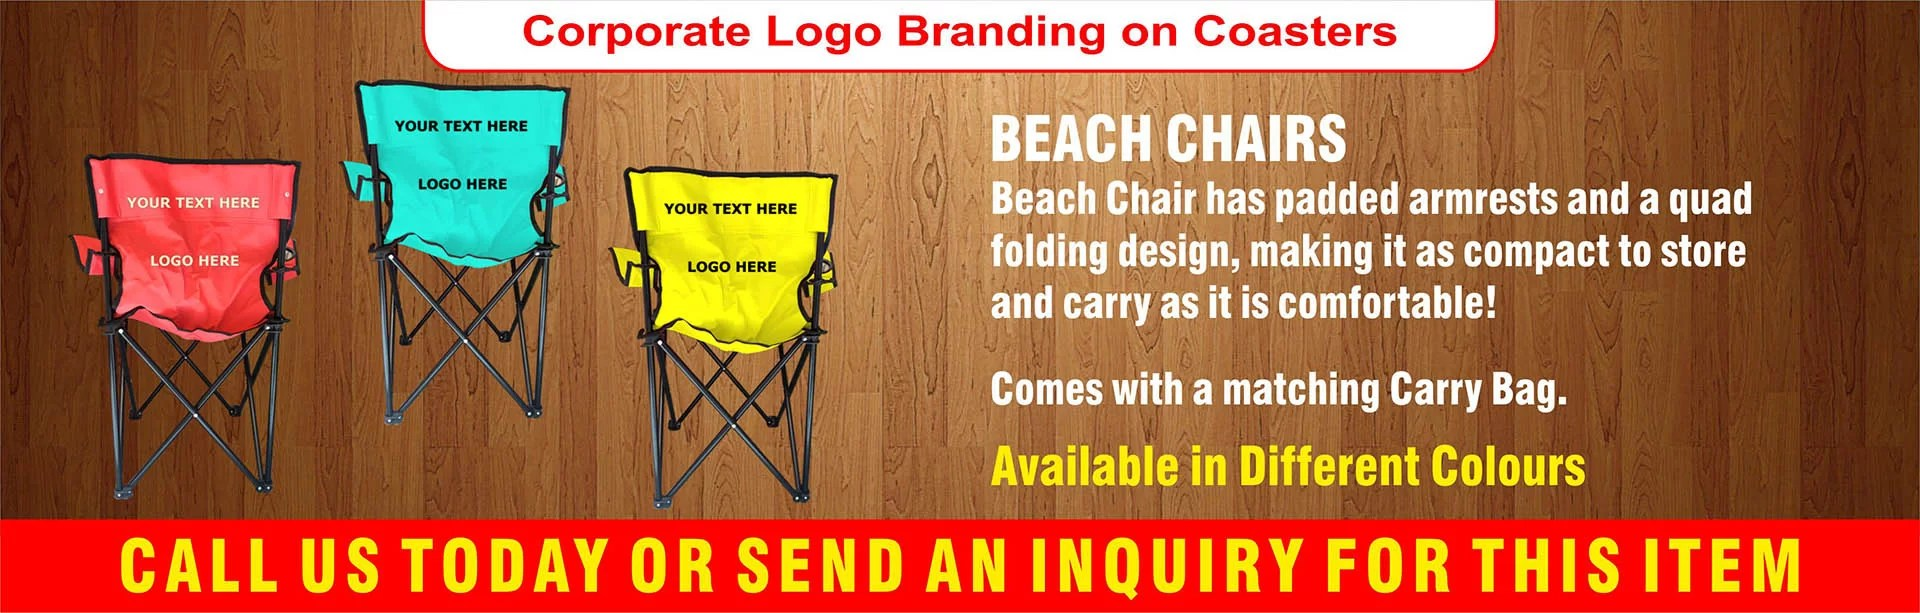 Beach Chairs Dubai, Beach Chairs in Dubai, Printing on Beach Chair, Branding on Beach Chair,